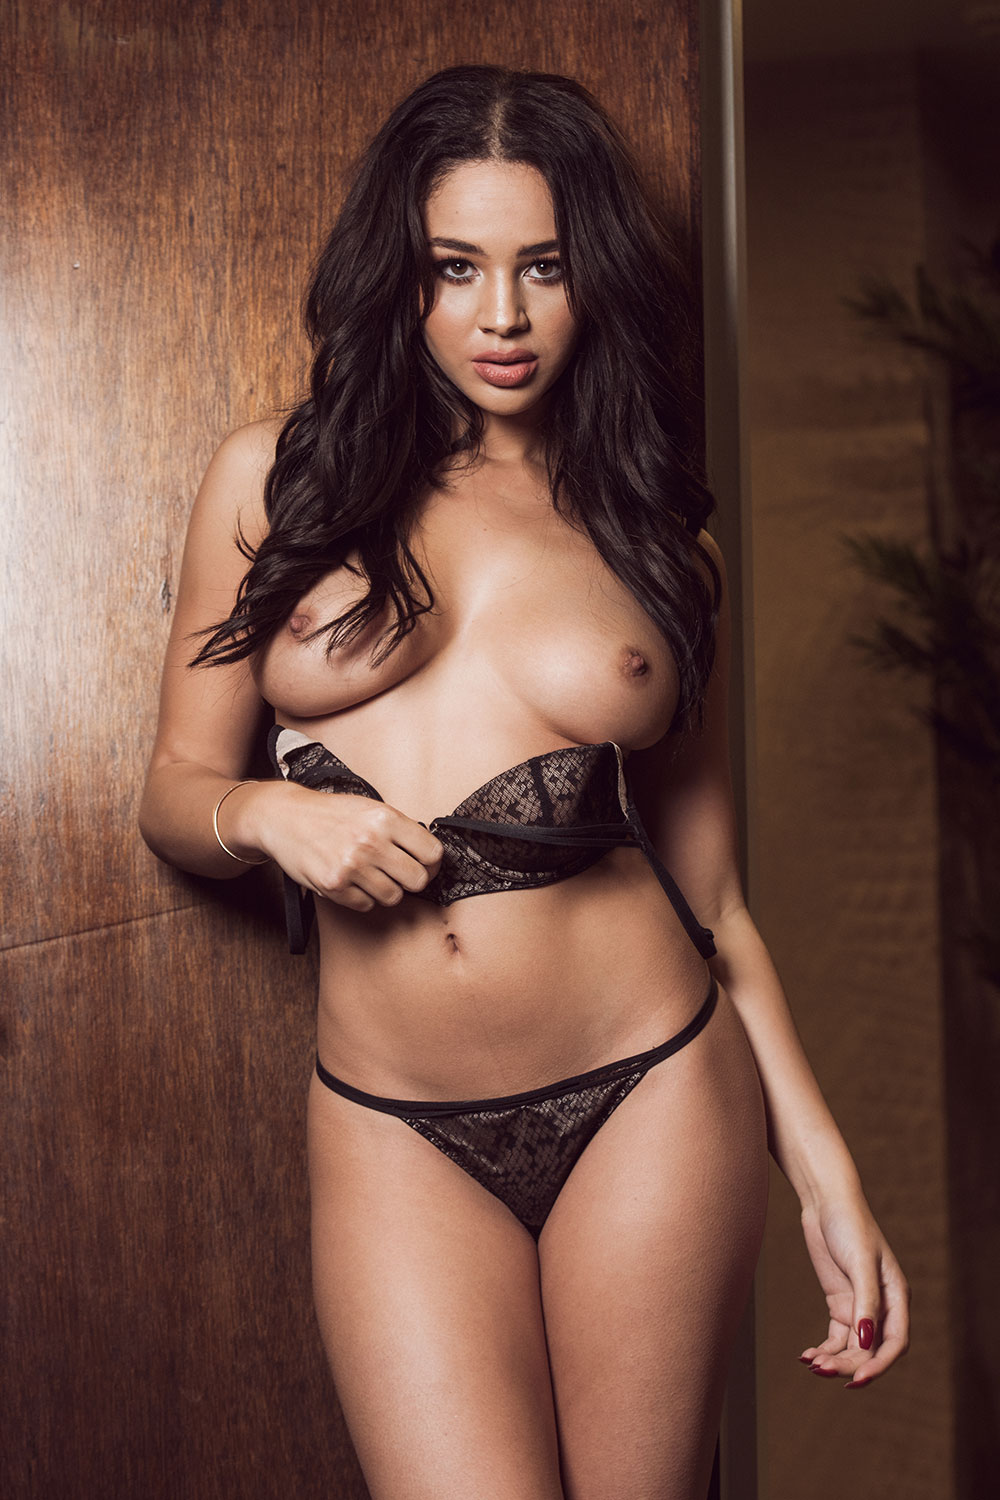 Courtnie-Quinlan-Sexy-Topless-2-1